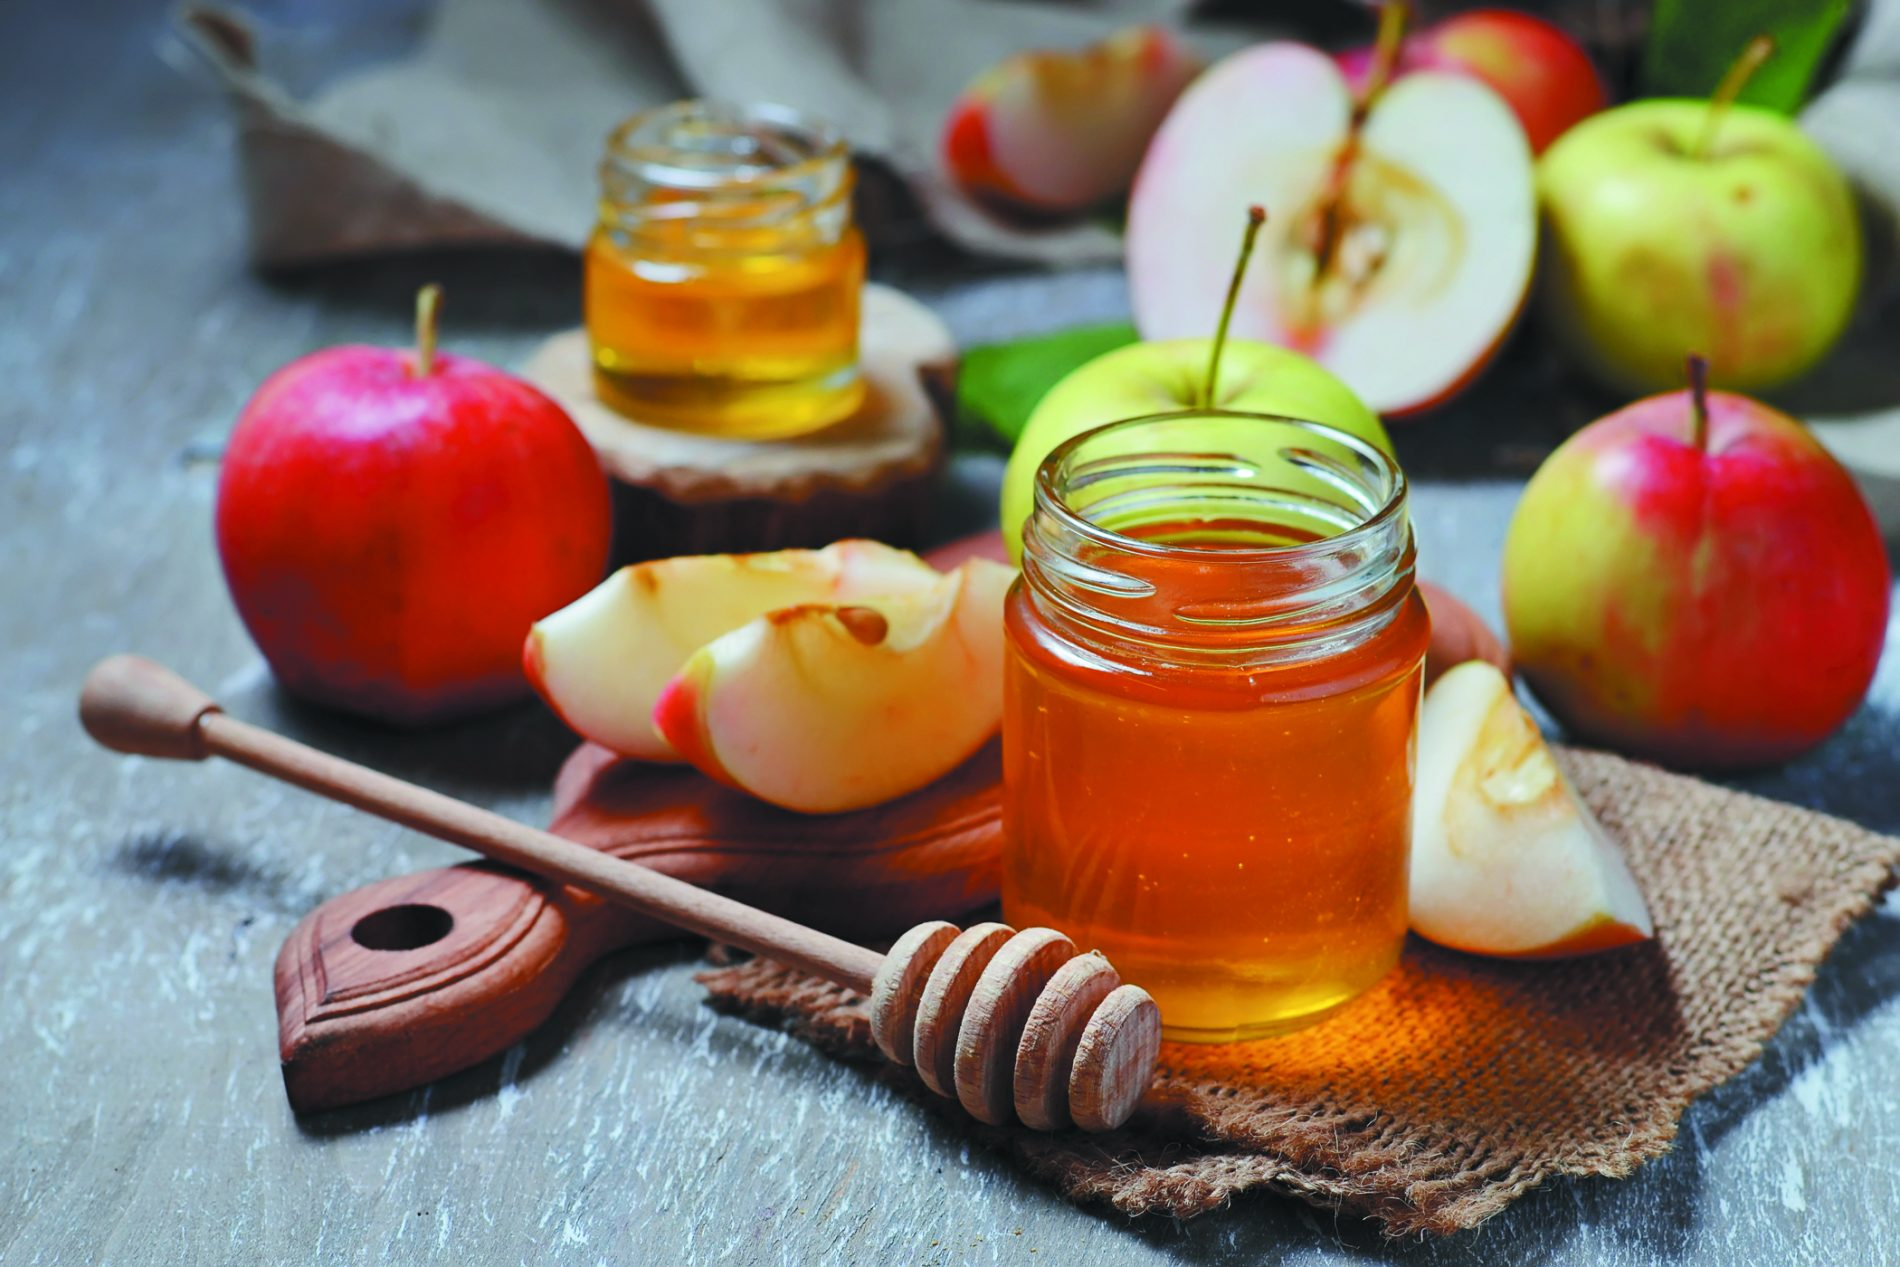 Honey with apple for Rosh Hashana, jewish New Year. Selective focus. community